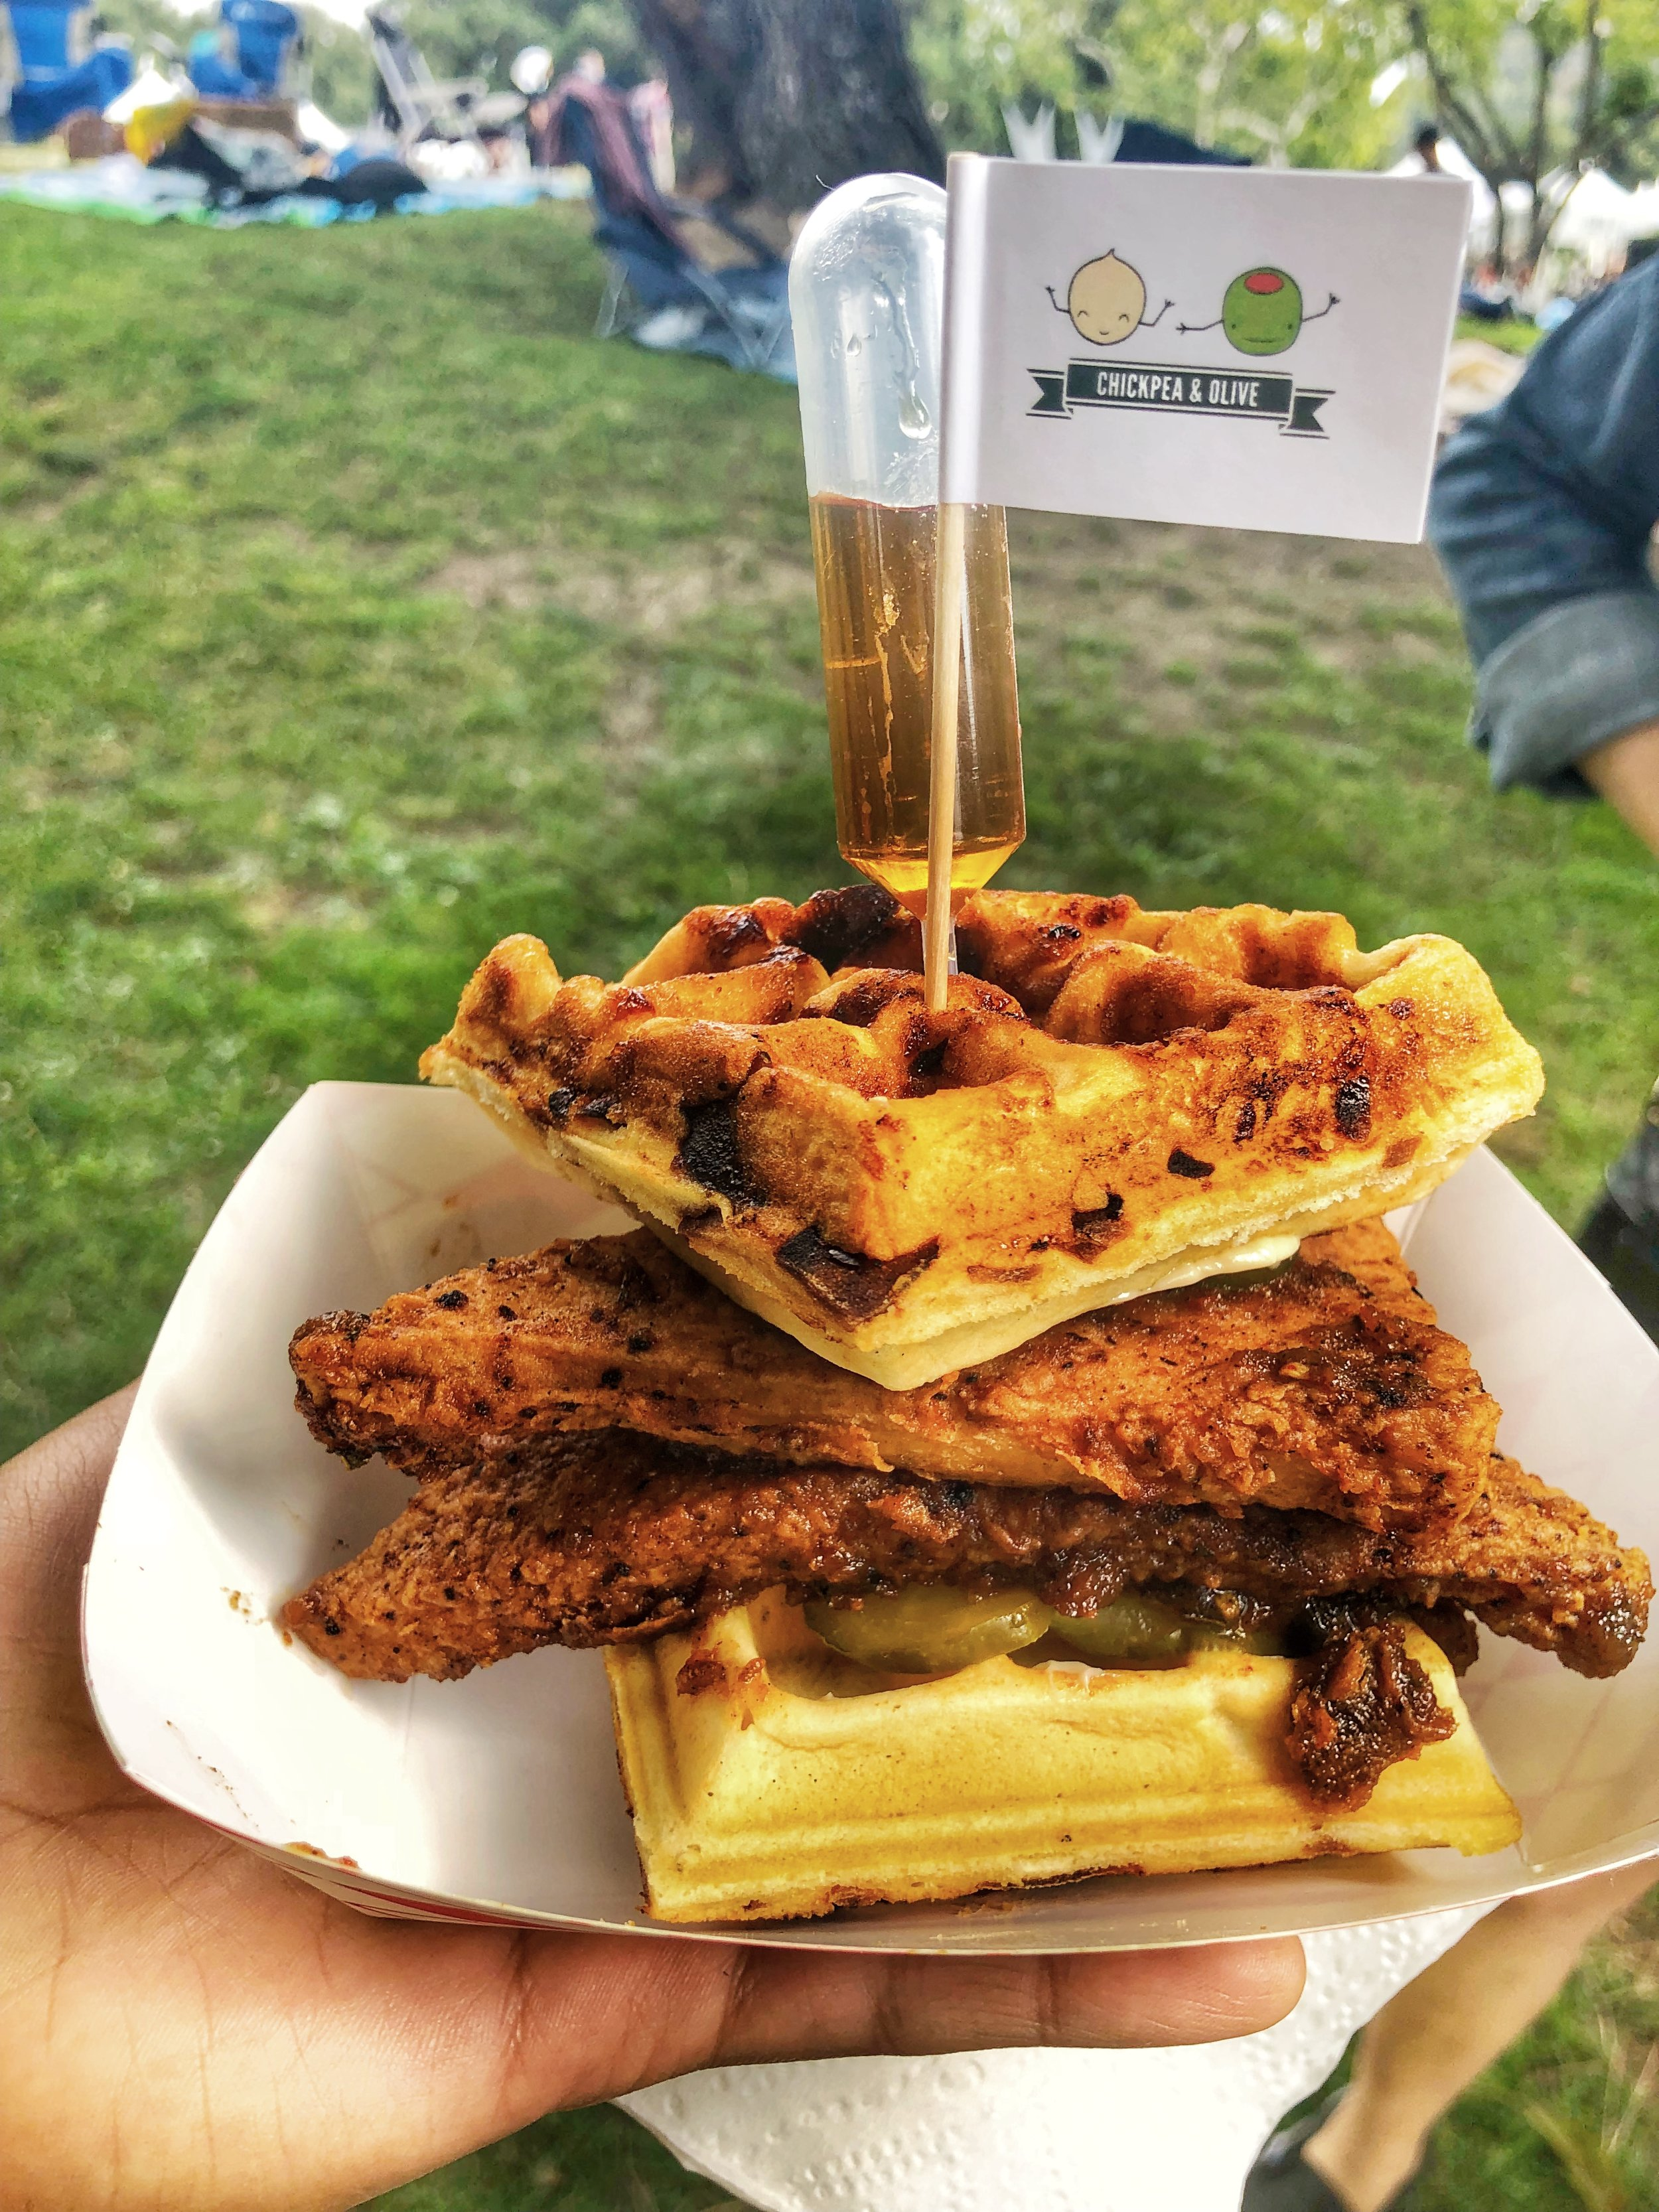 Even though they're from New York, I love them! Spicy Chicken & Waffles